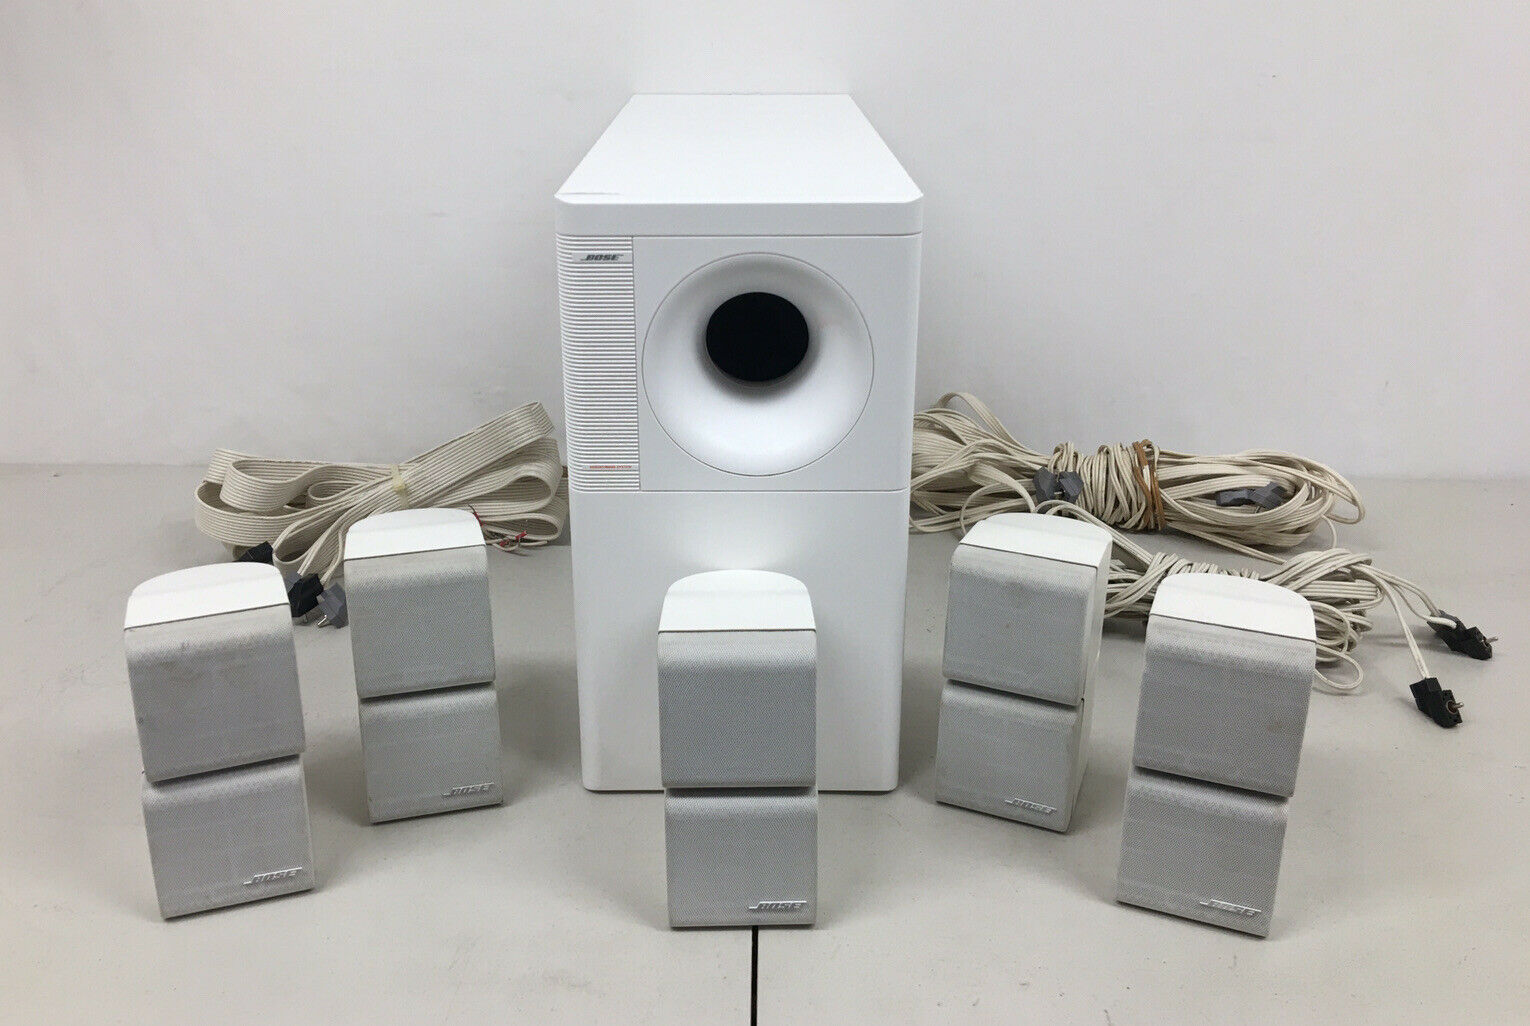 Bose Acoustimass 10 Home Theater Sound System, 5 Cube Speakers/Cables/Sub #8007. Buy it now for 259.99